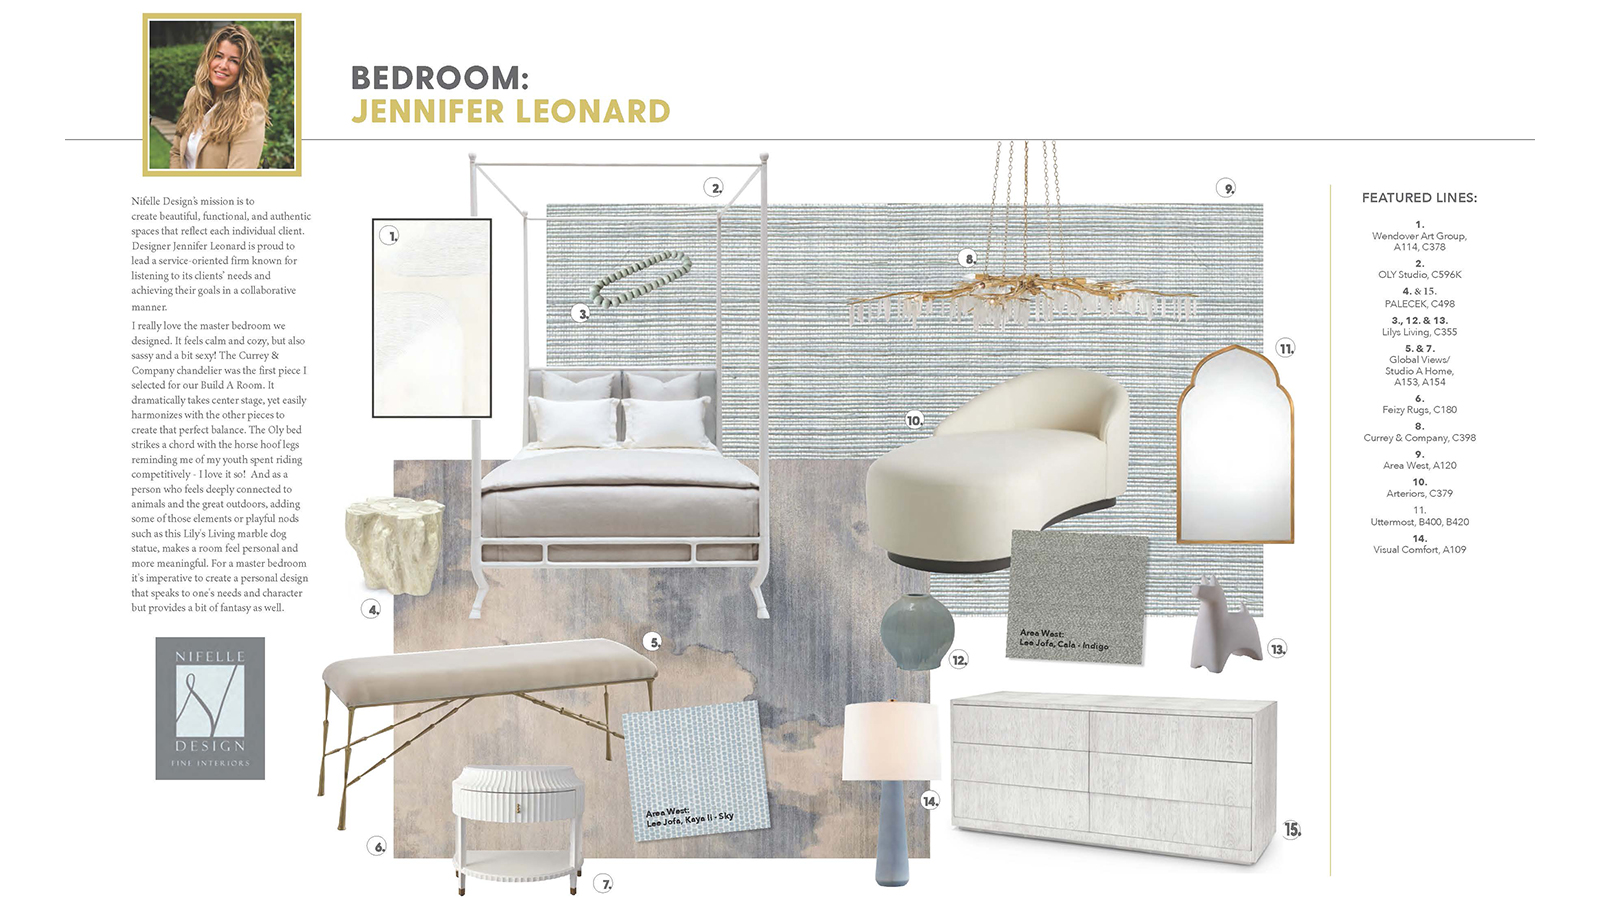 Build the Room